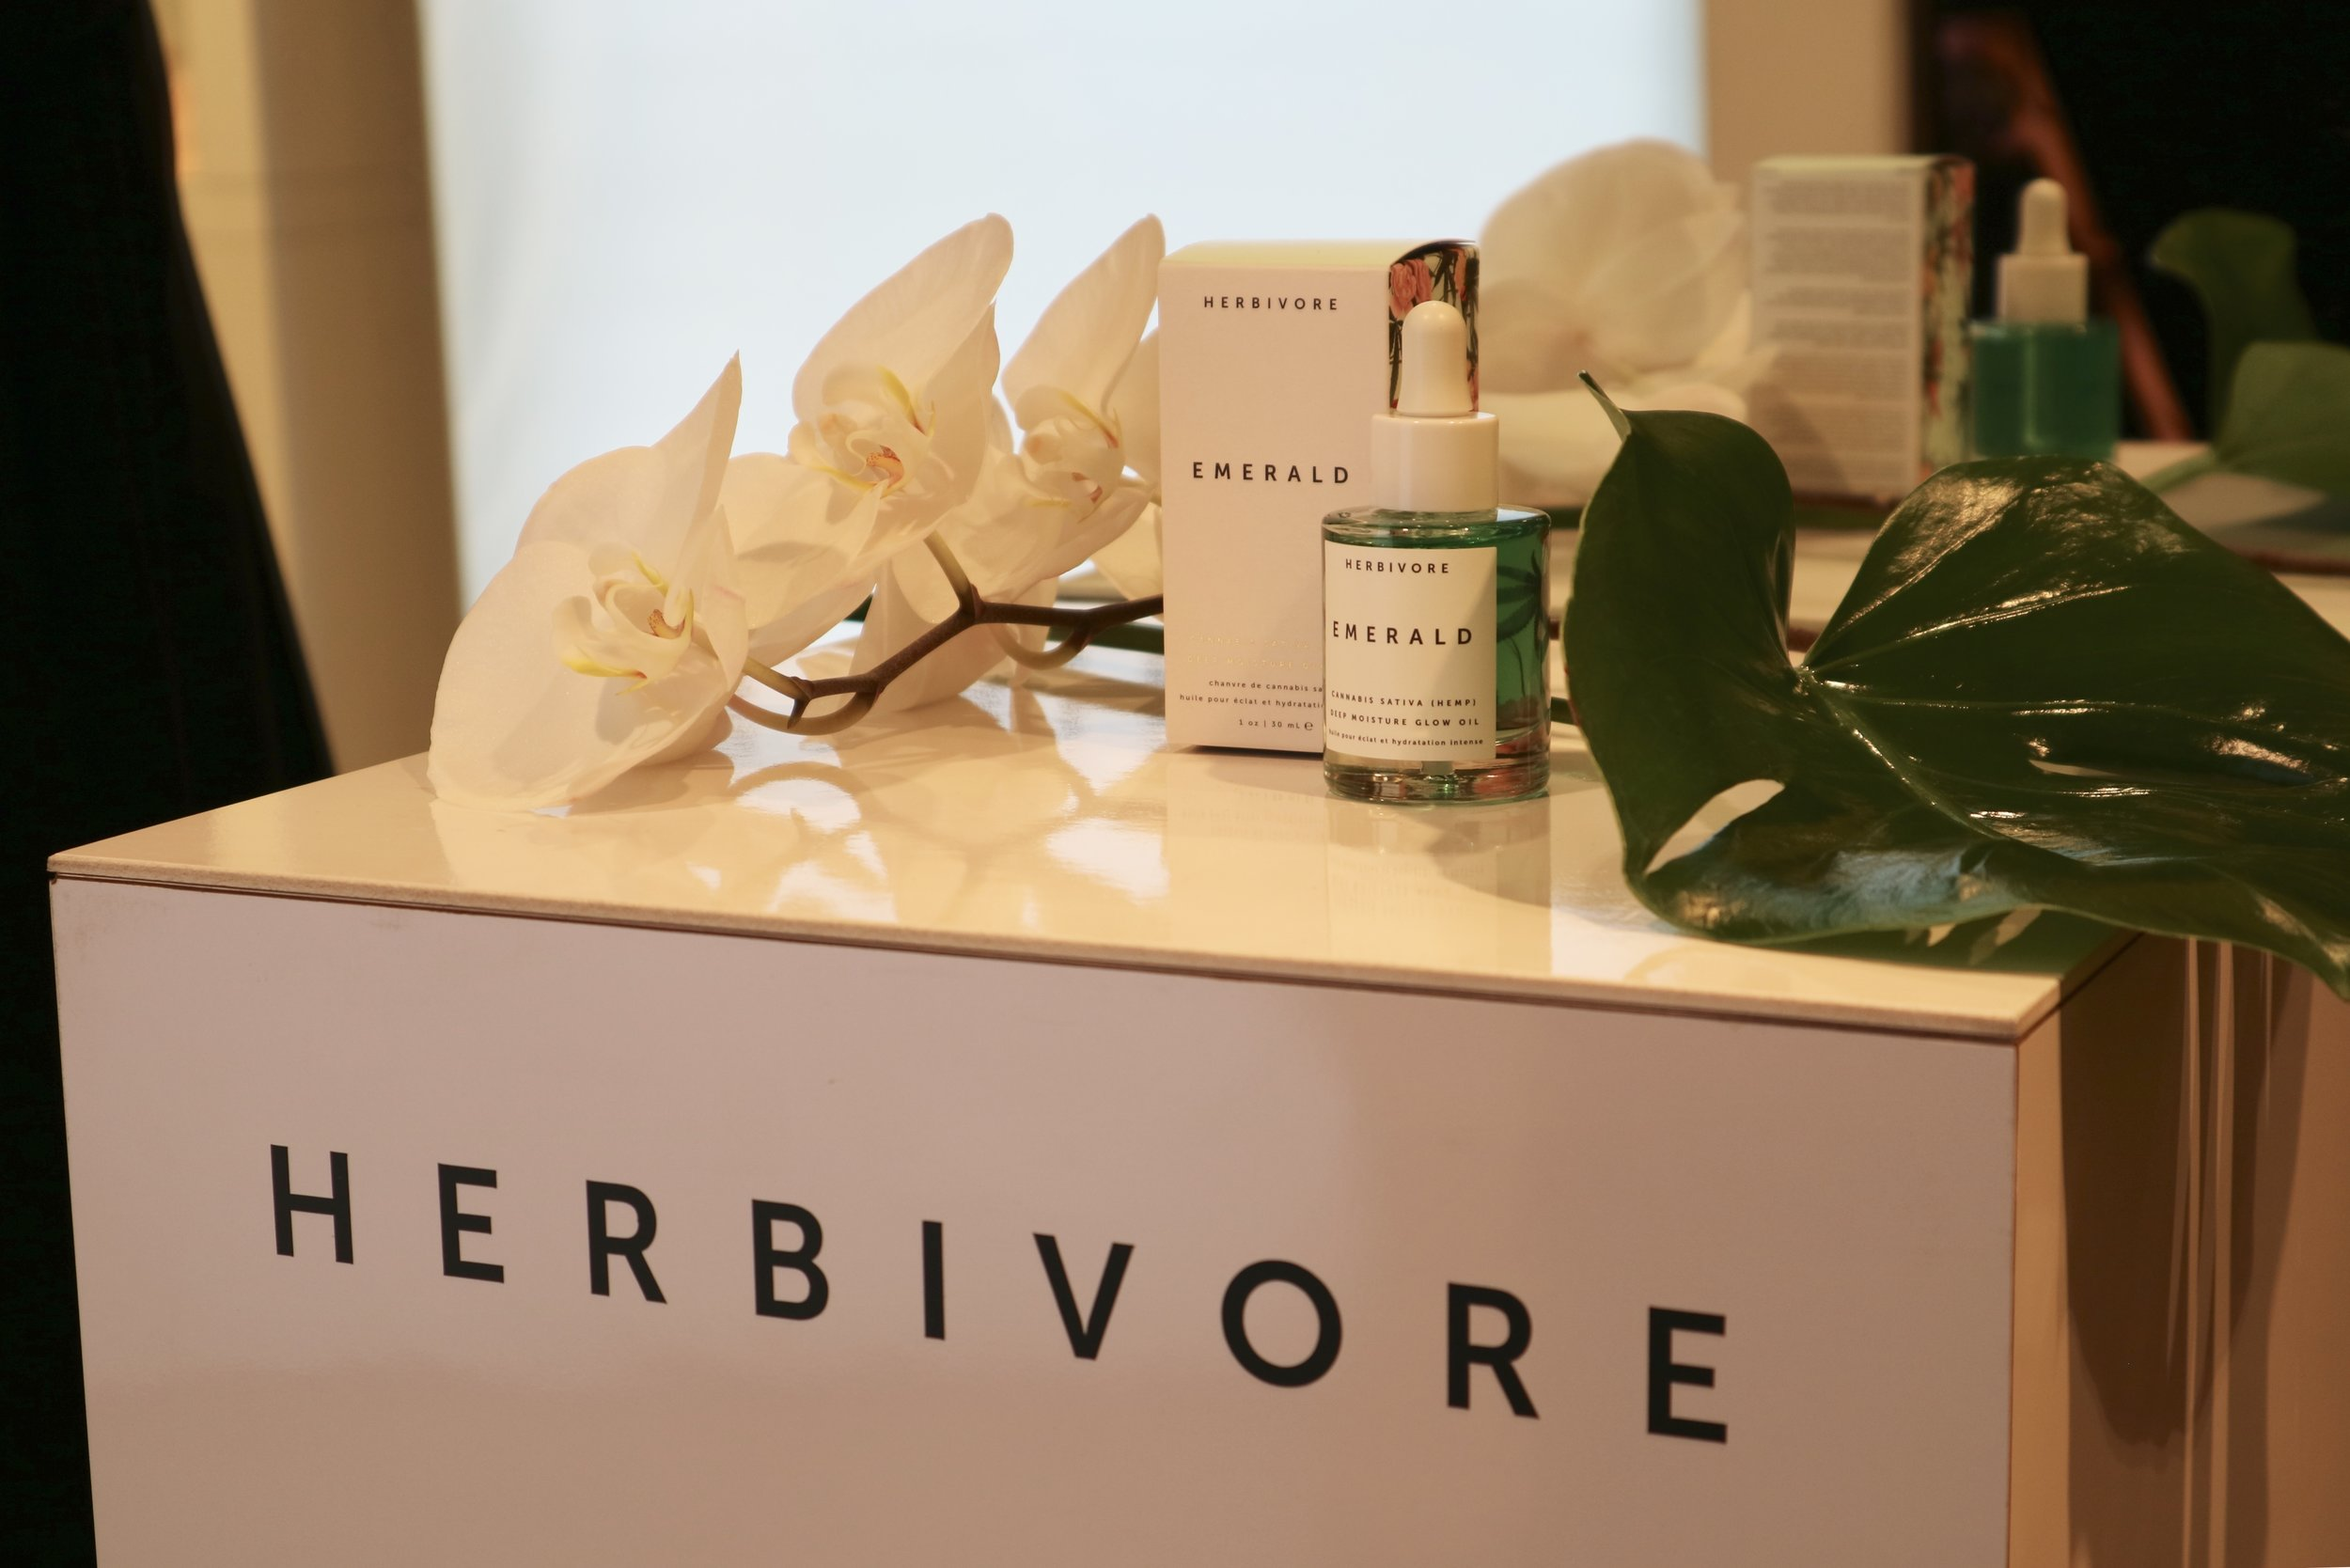 Herbivore - Emerald Oil launch with Space NK